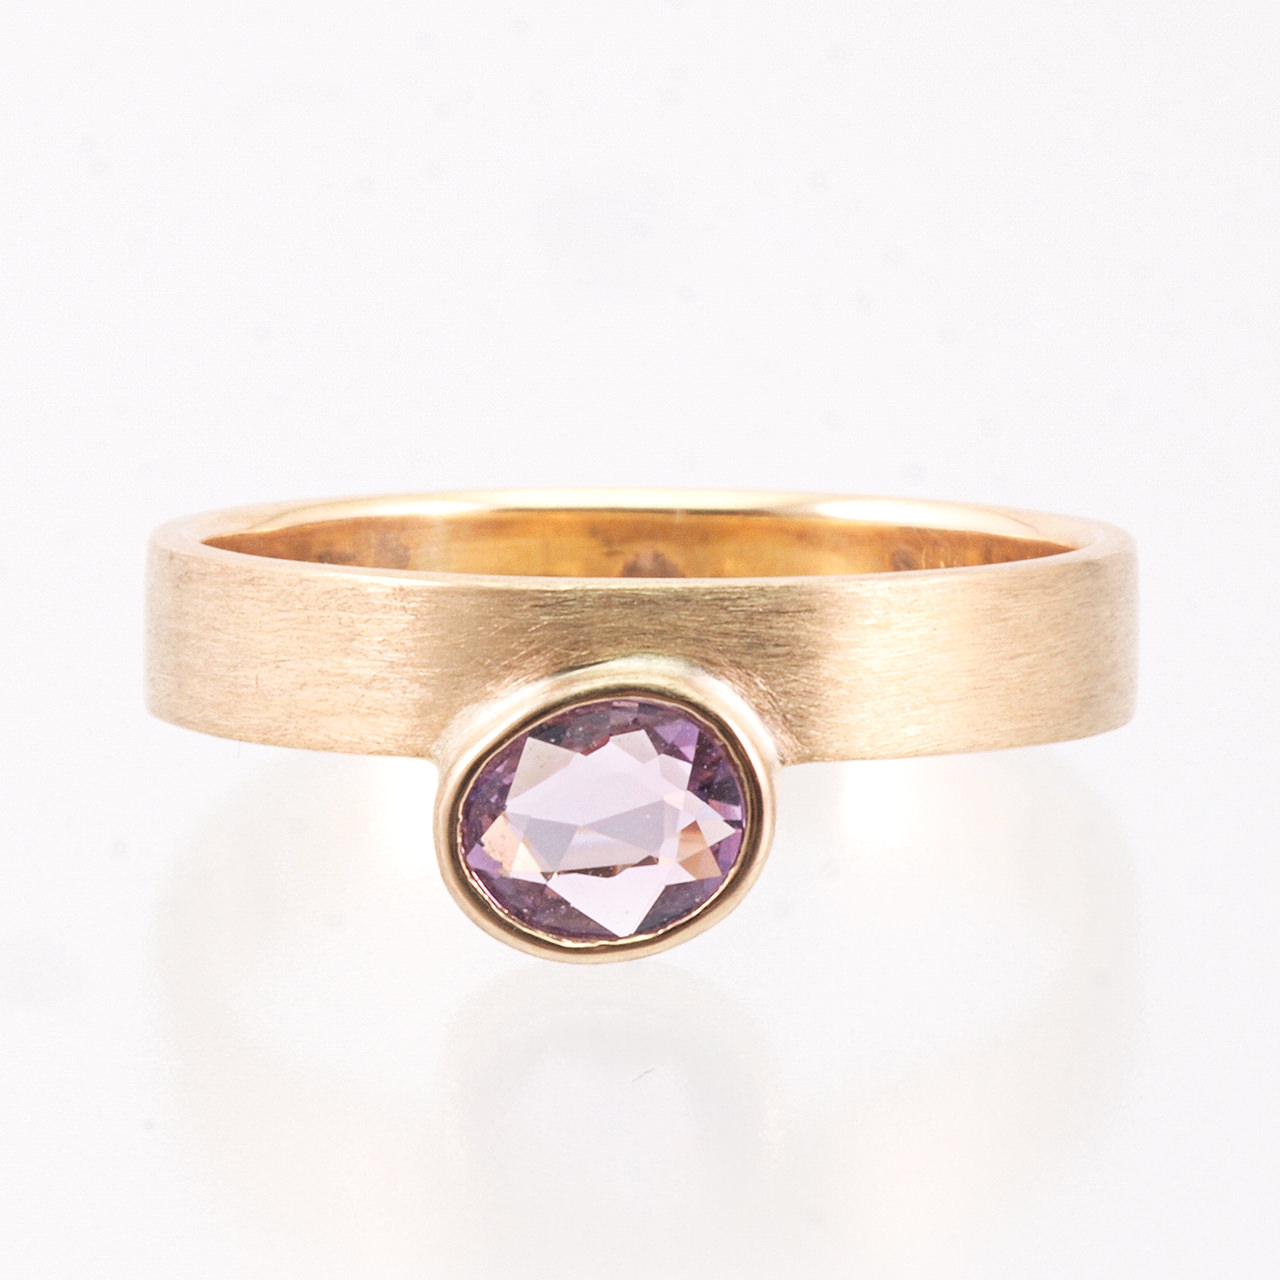 Sunrise ring / Oval sapphire